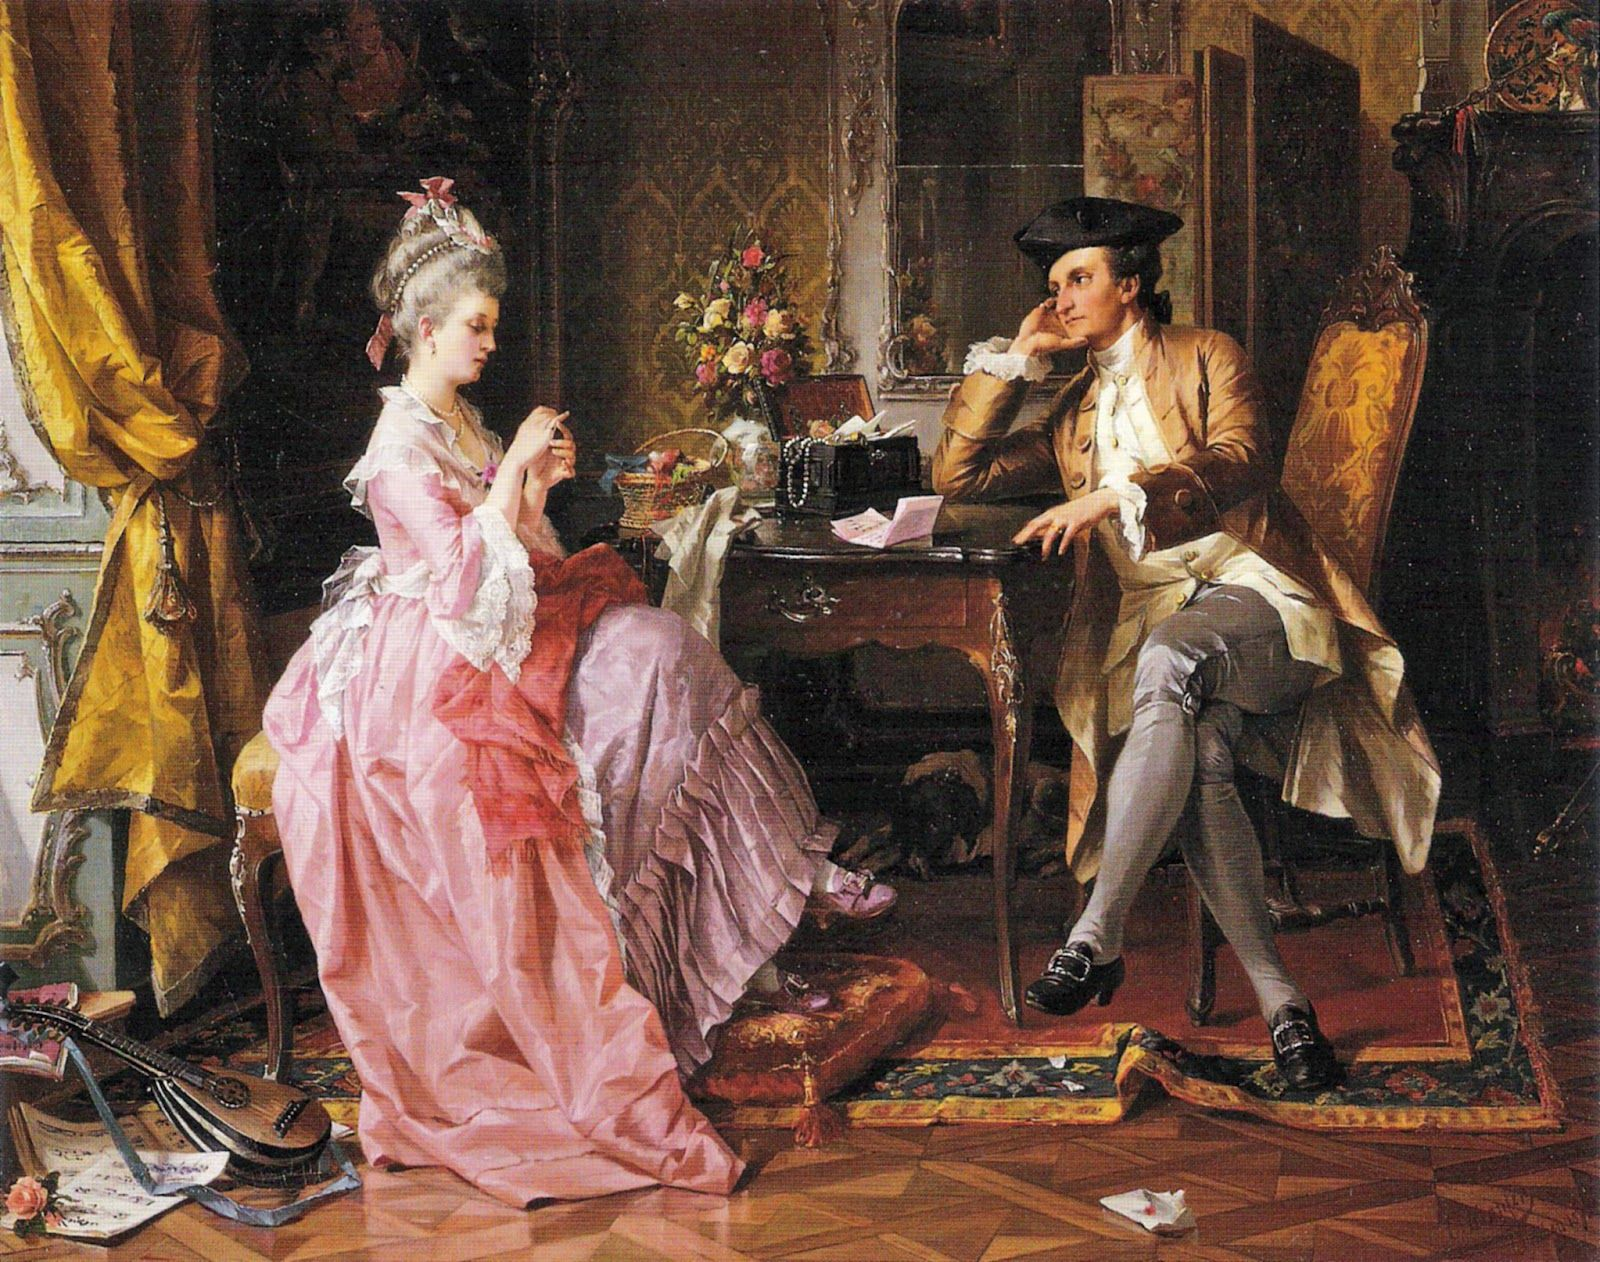 divorce in the 18th century essay The history of divorce law in the usa by history cooperative in government 4 share on facebook share on twitter relatedarticles  divorce towards the end of the 20 th century and into the early 21 st century was a much different proposition from a hundred years ago.